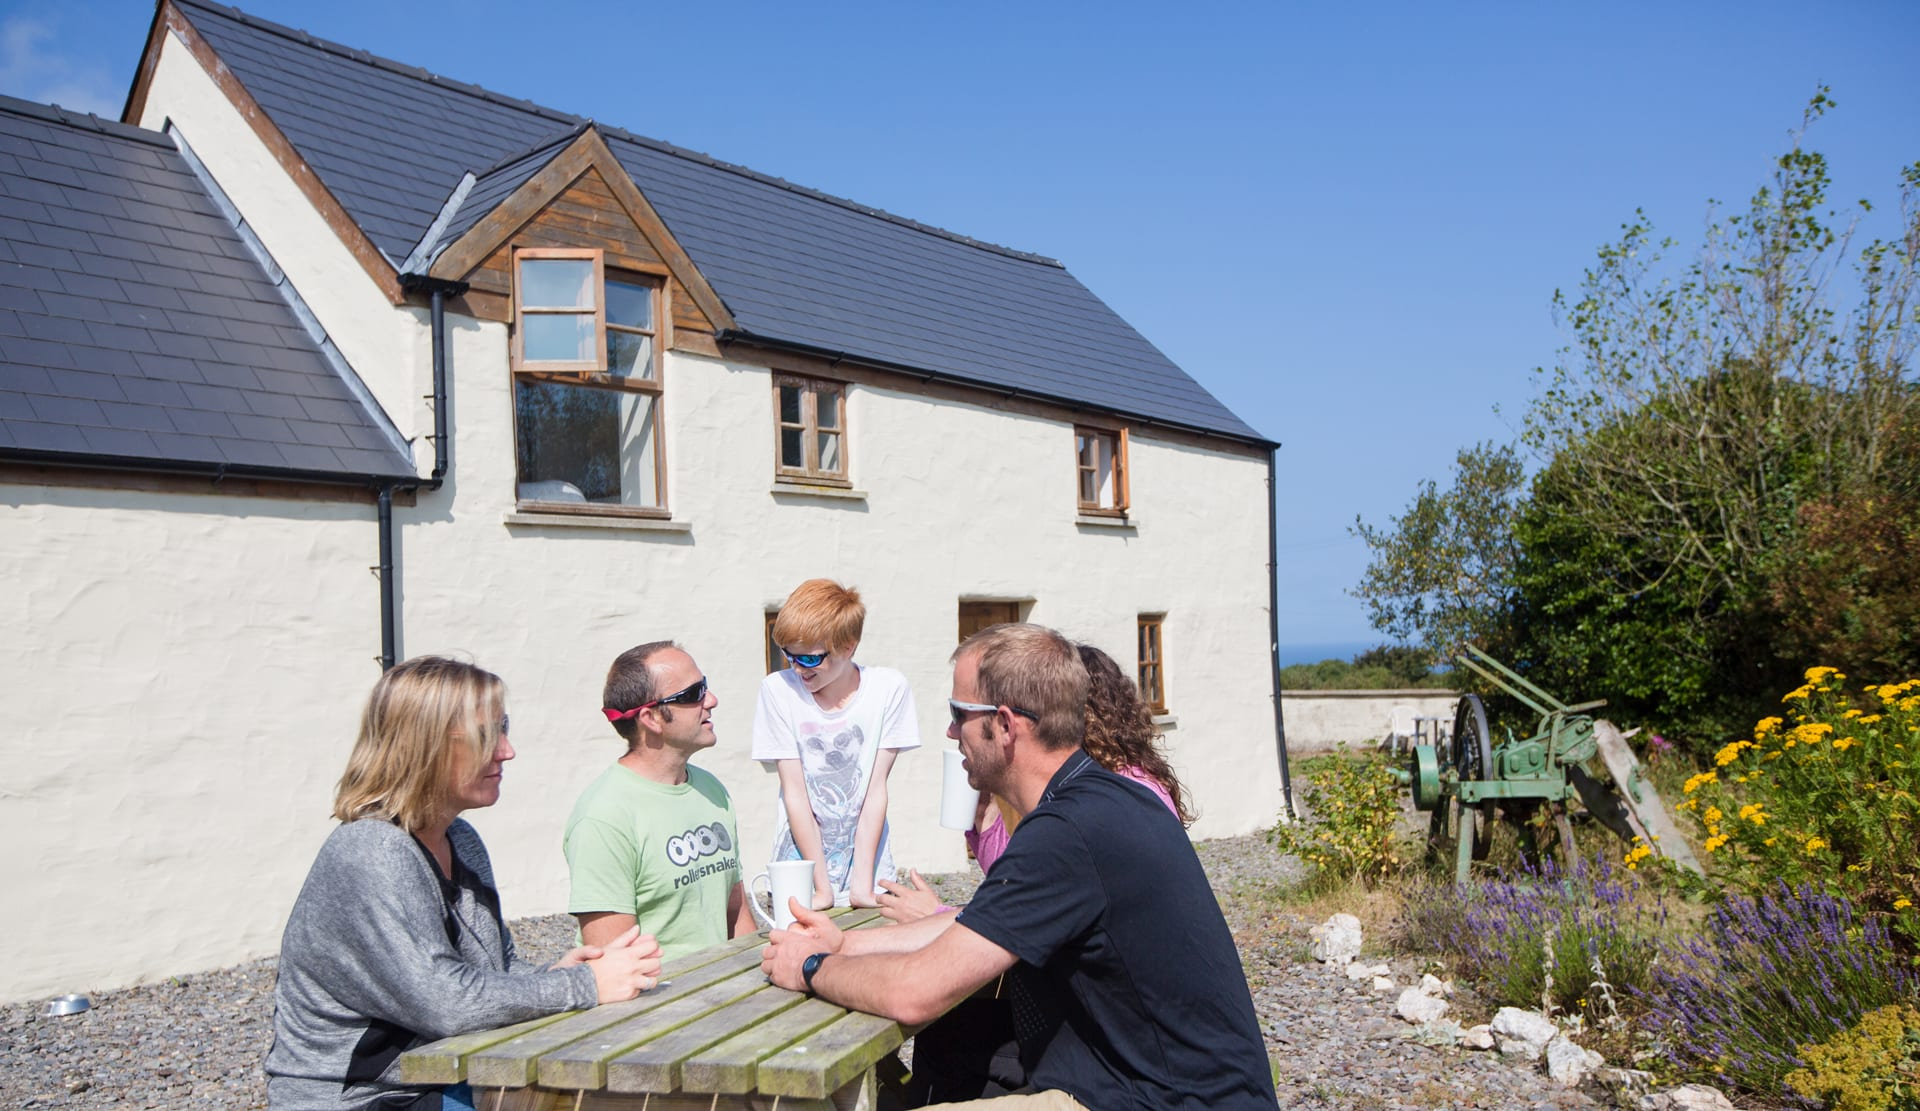 August Bank Holiday 2021: Availability in Hostels and Bunkhouses